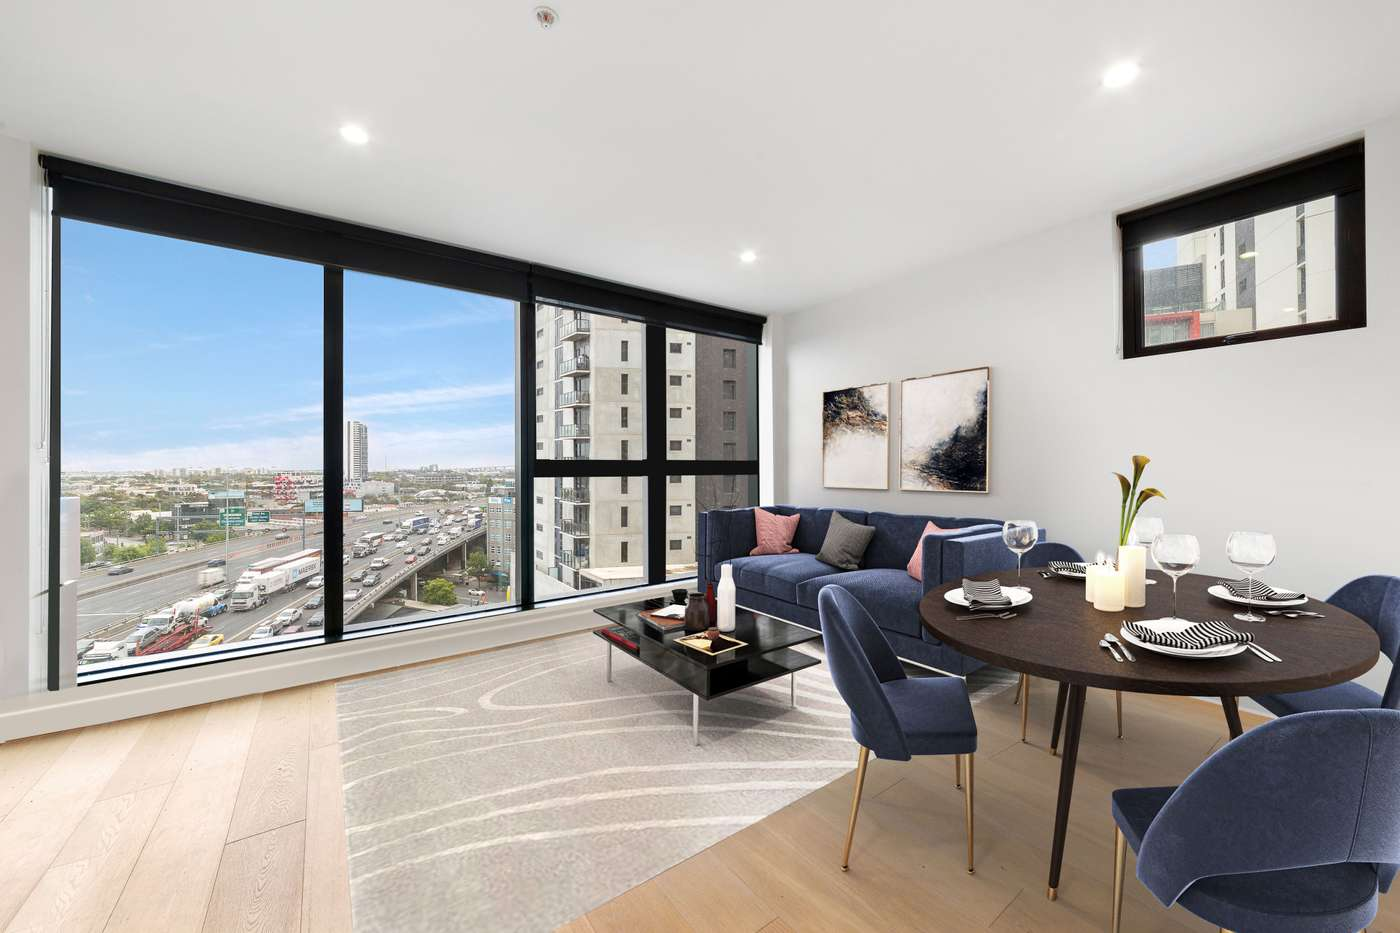 Main view of Homely apartment listing, 1004/58 Clarke Street, Southbank, VIC 3006